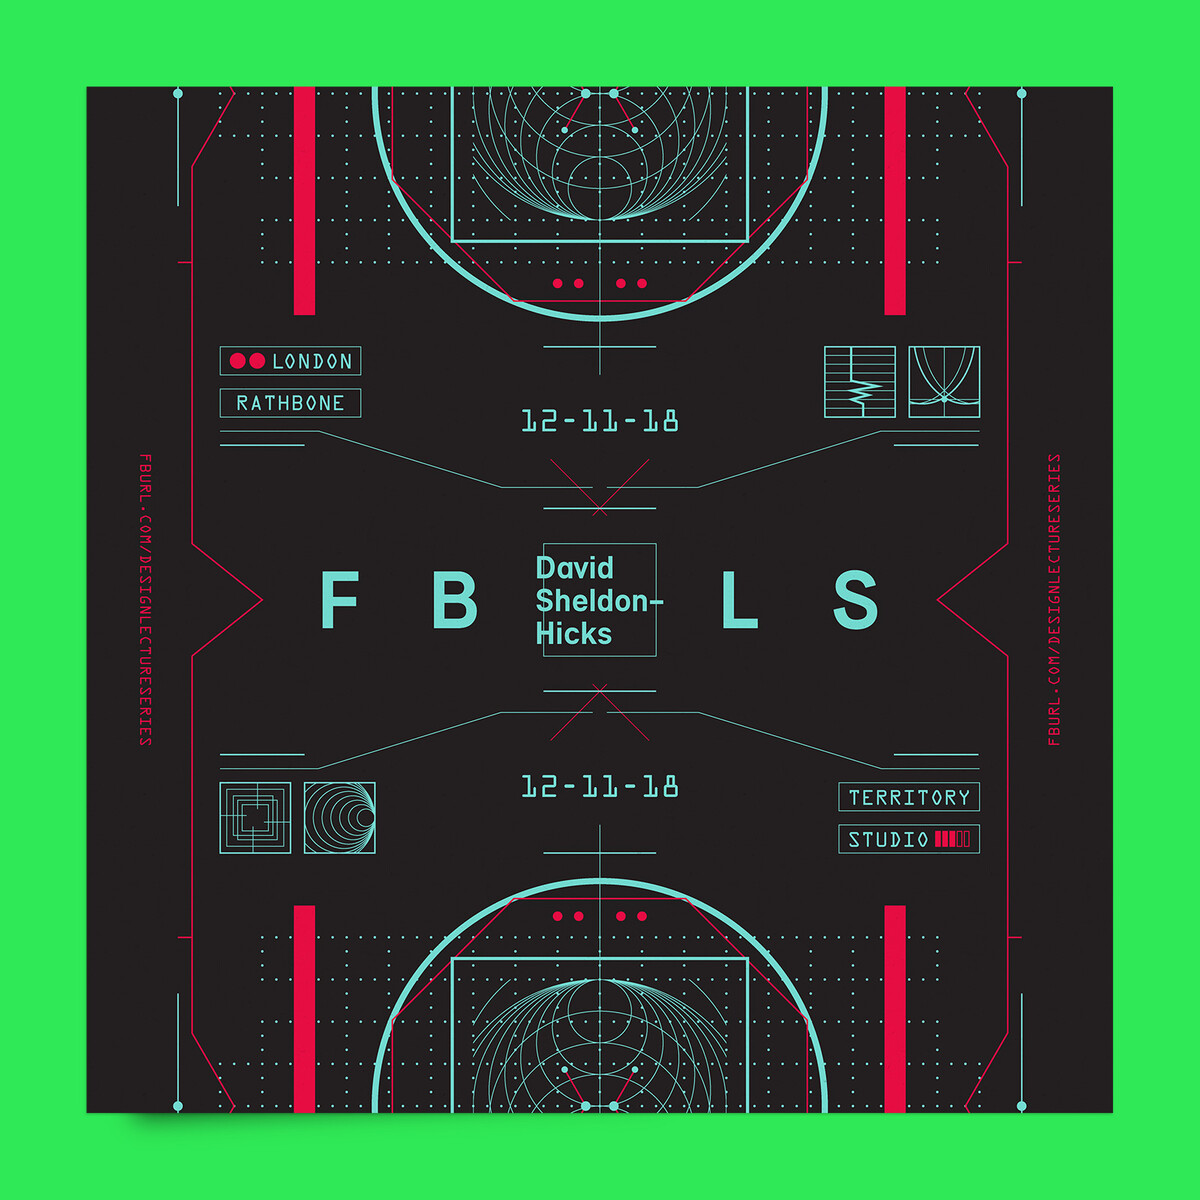 FBDLS - David Hicks